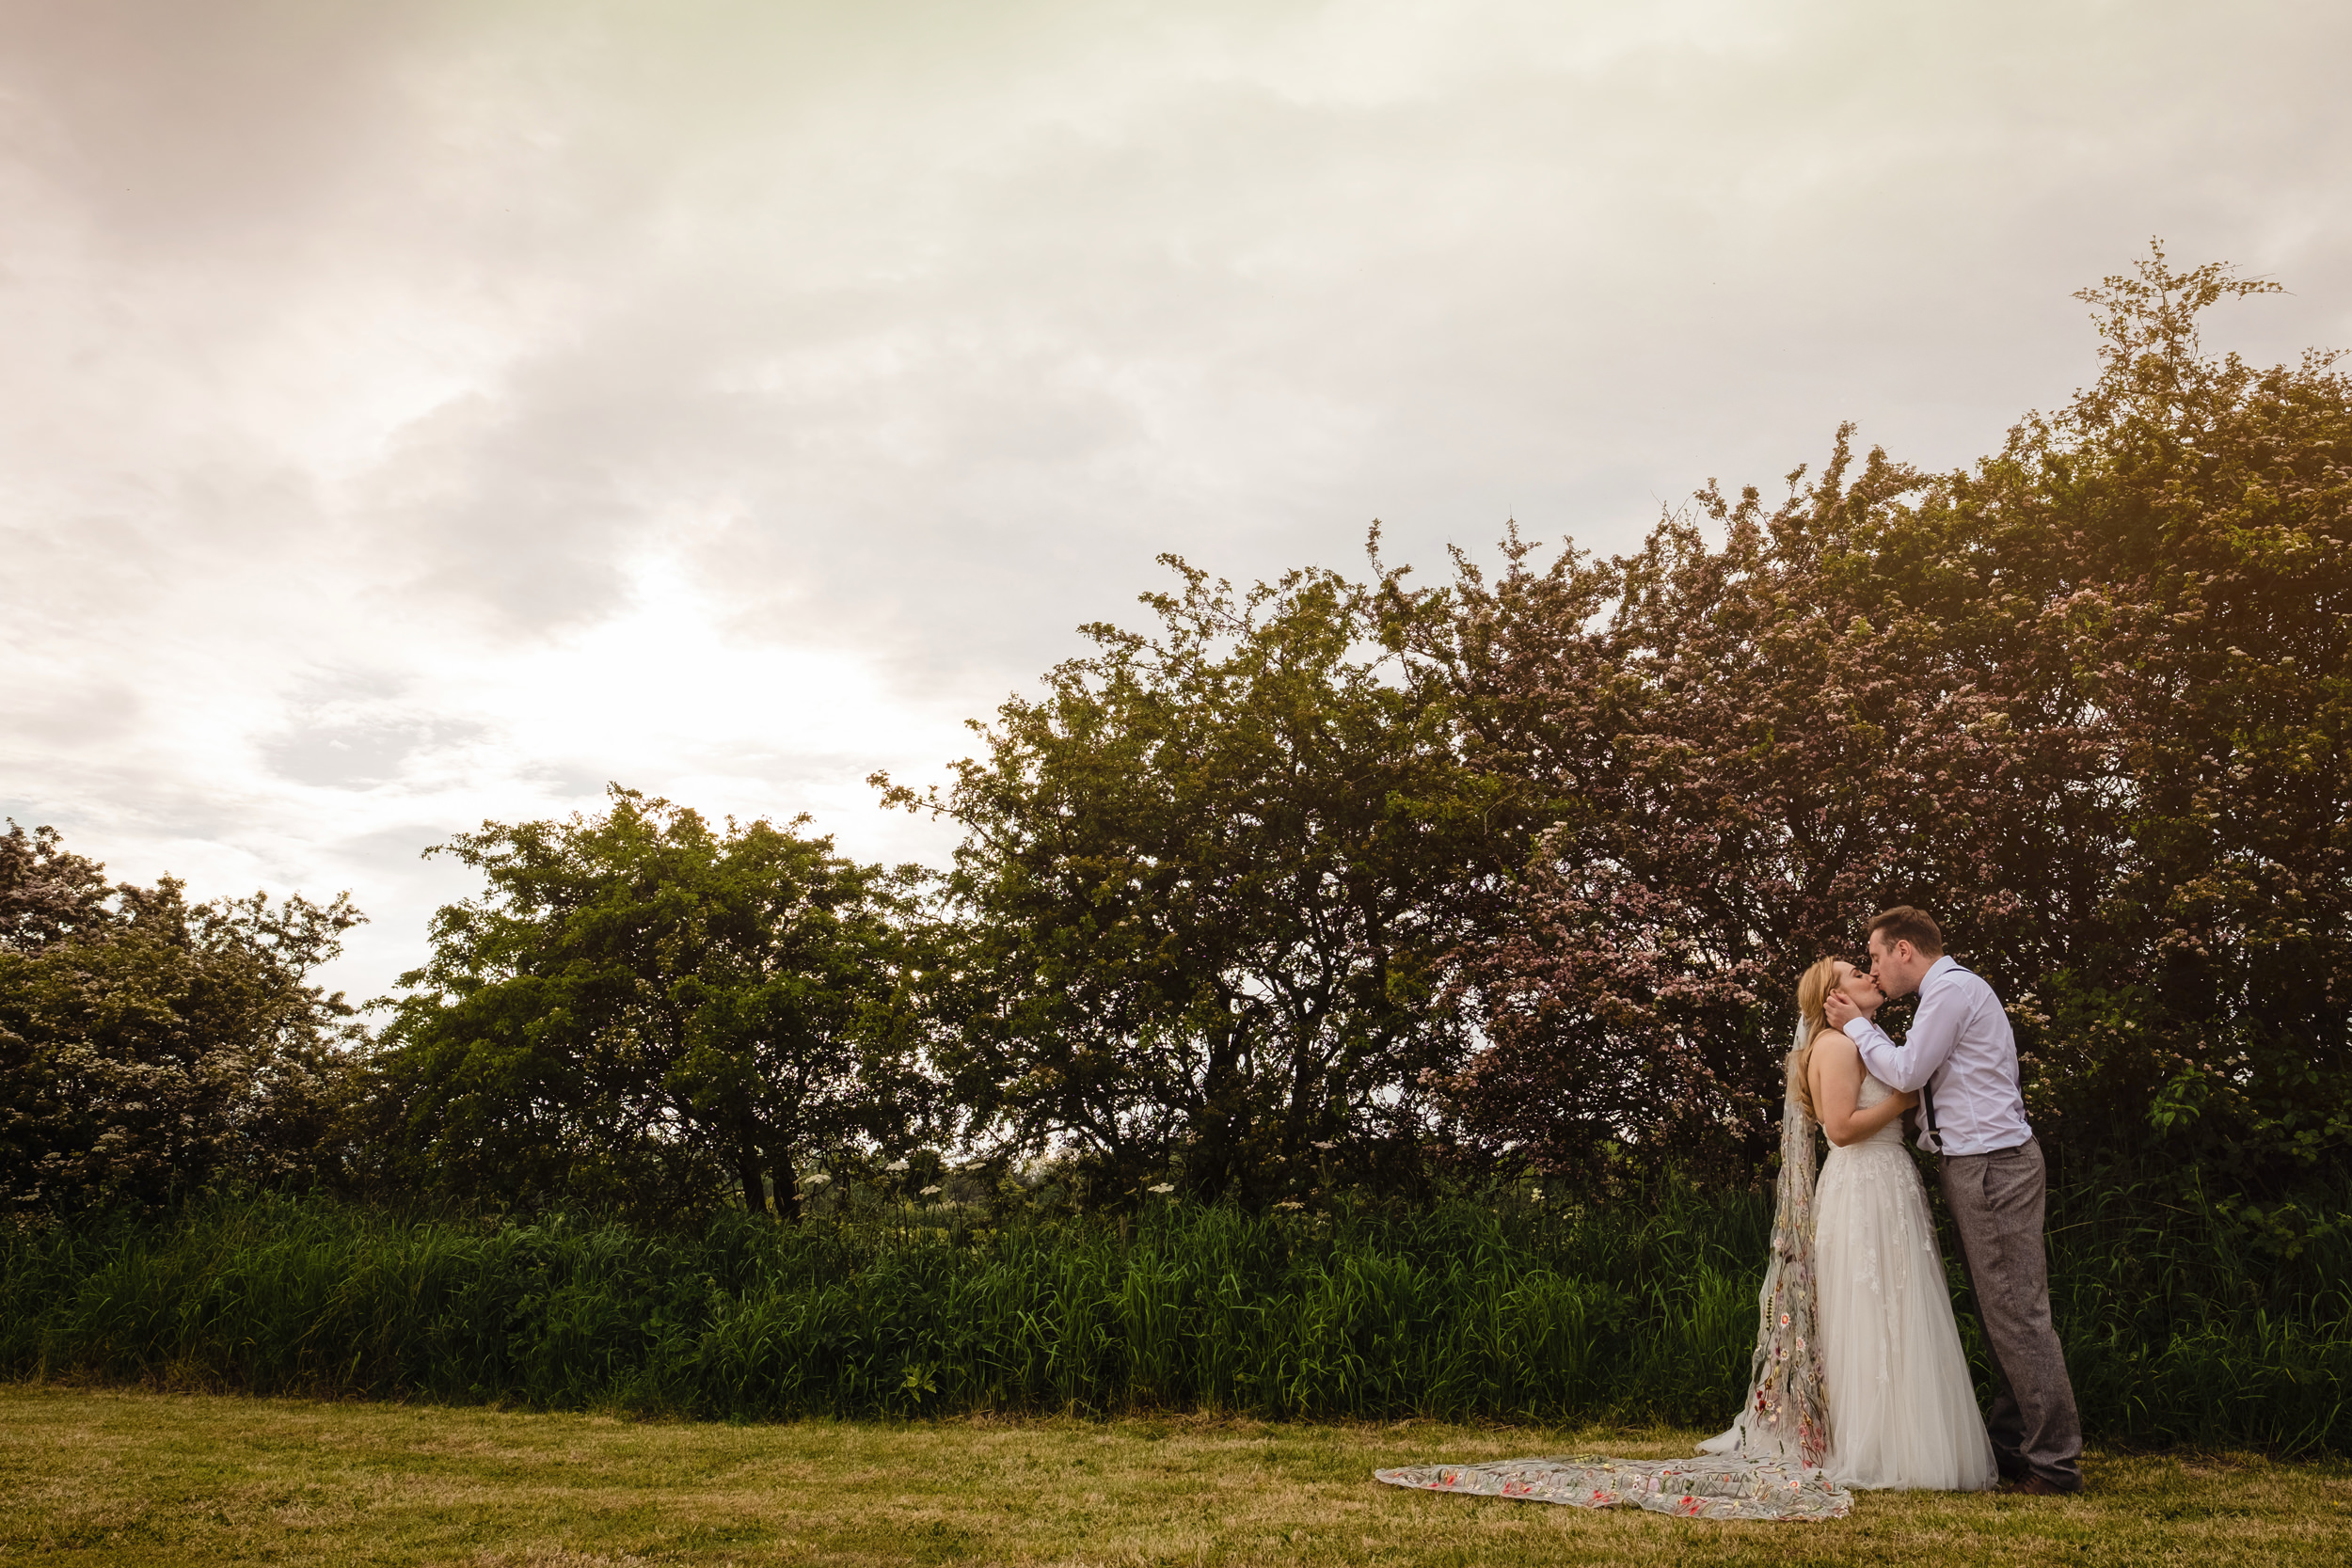 newlyweds in a field kissing. wildwood and eden wedding photography by emma and rich.